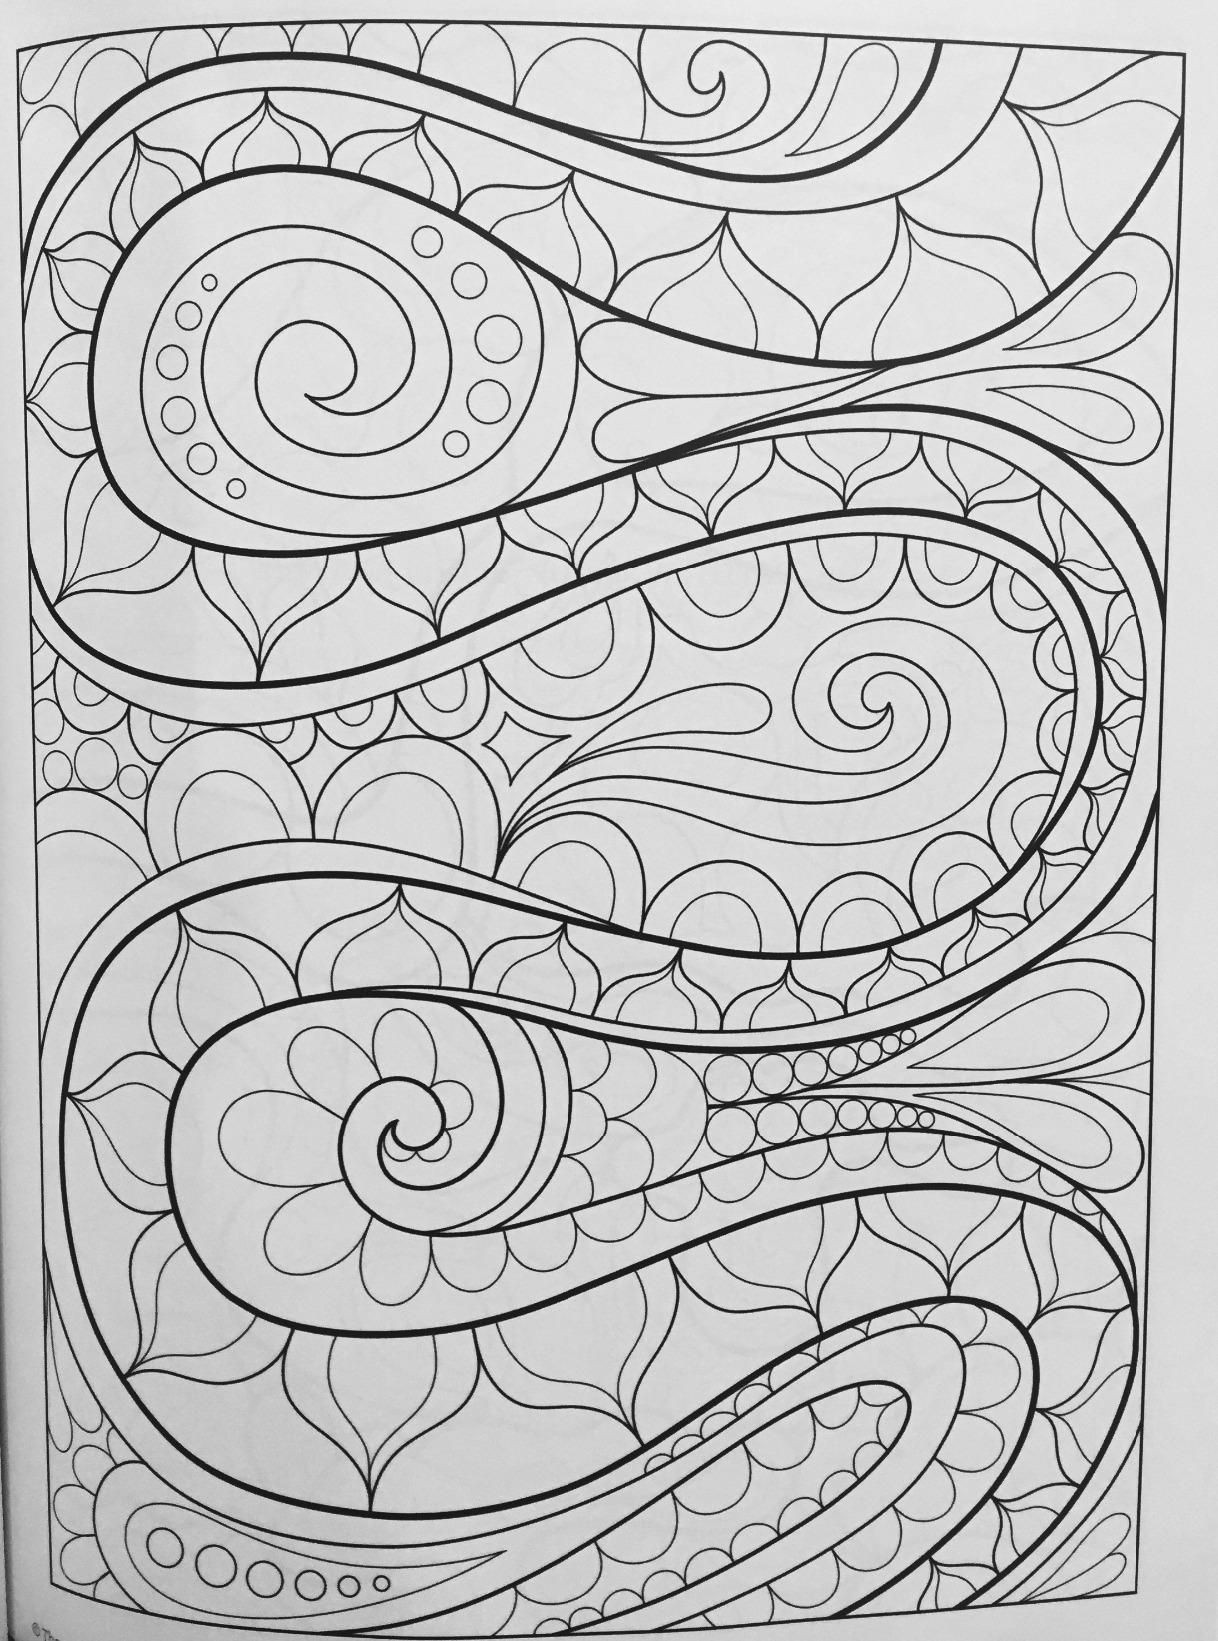 Free spirit coloring book by thaneeya mcardle coloring books by - Groovy Abstract Coloring Book Design Originals Coloring Is Fun Thaneeya Mcardle